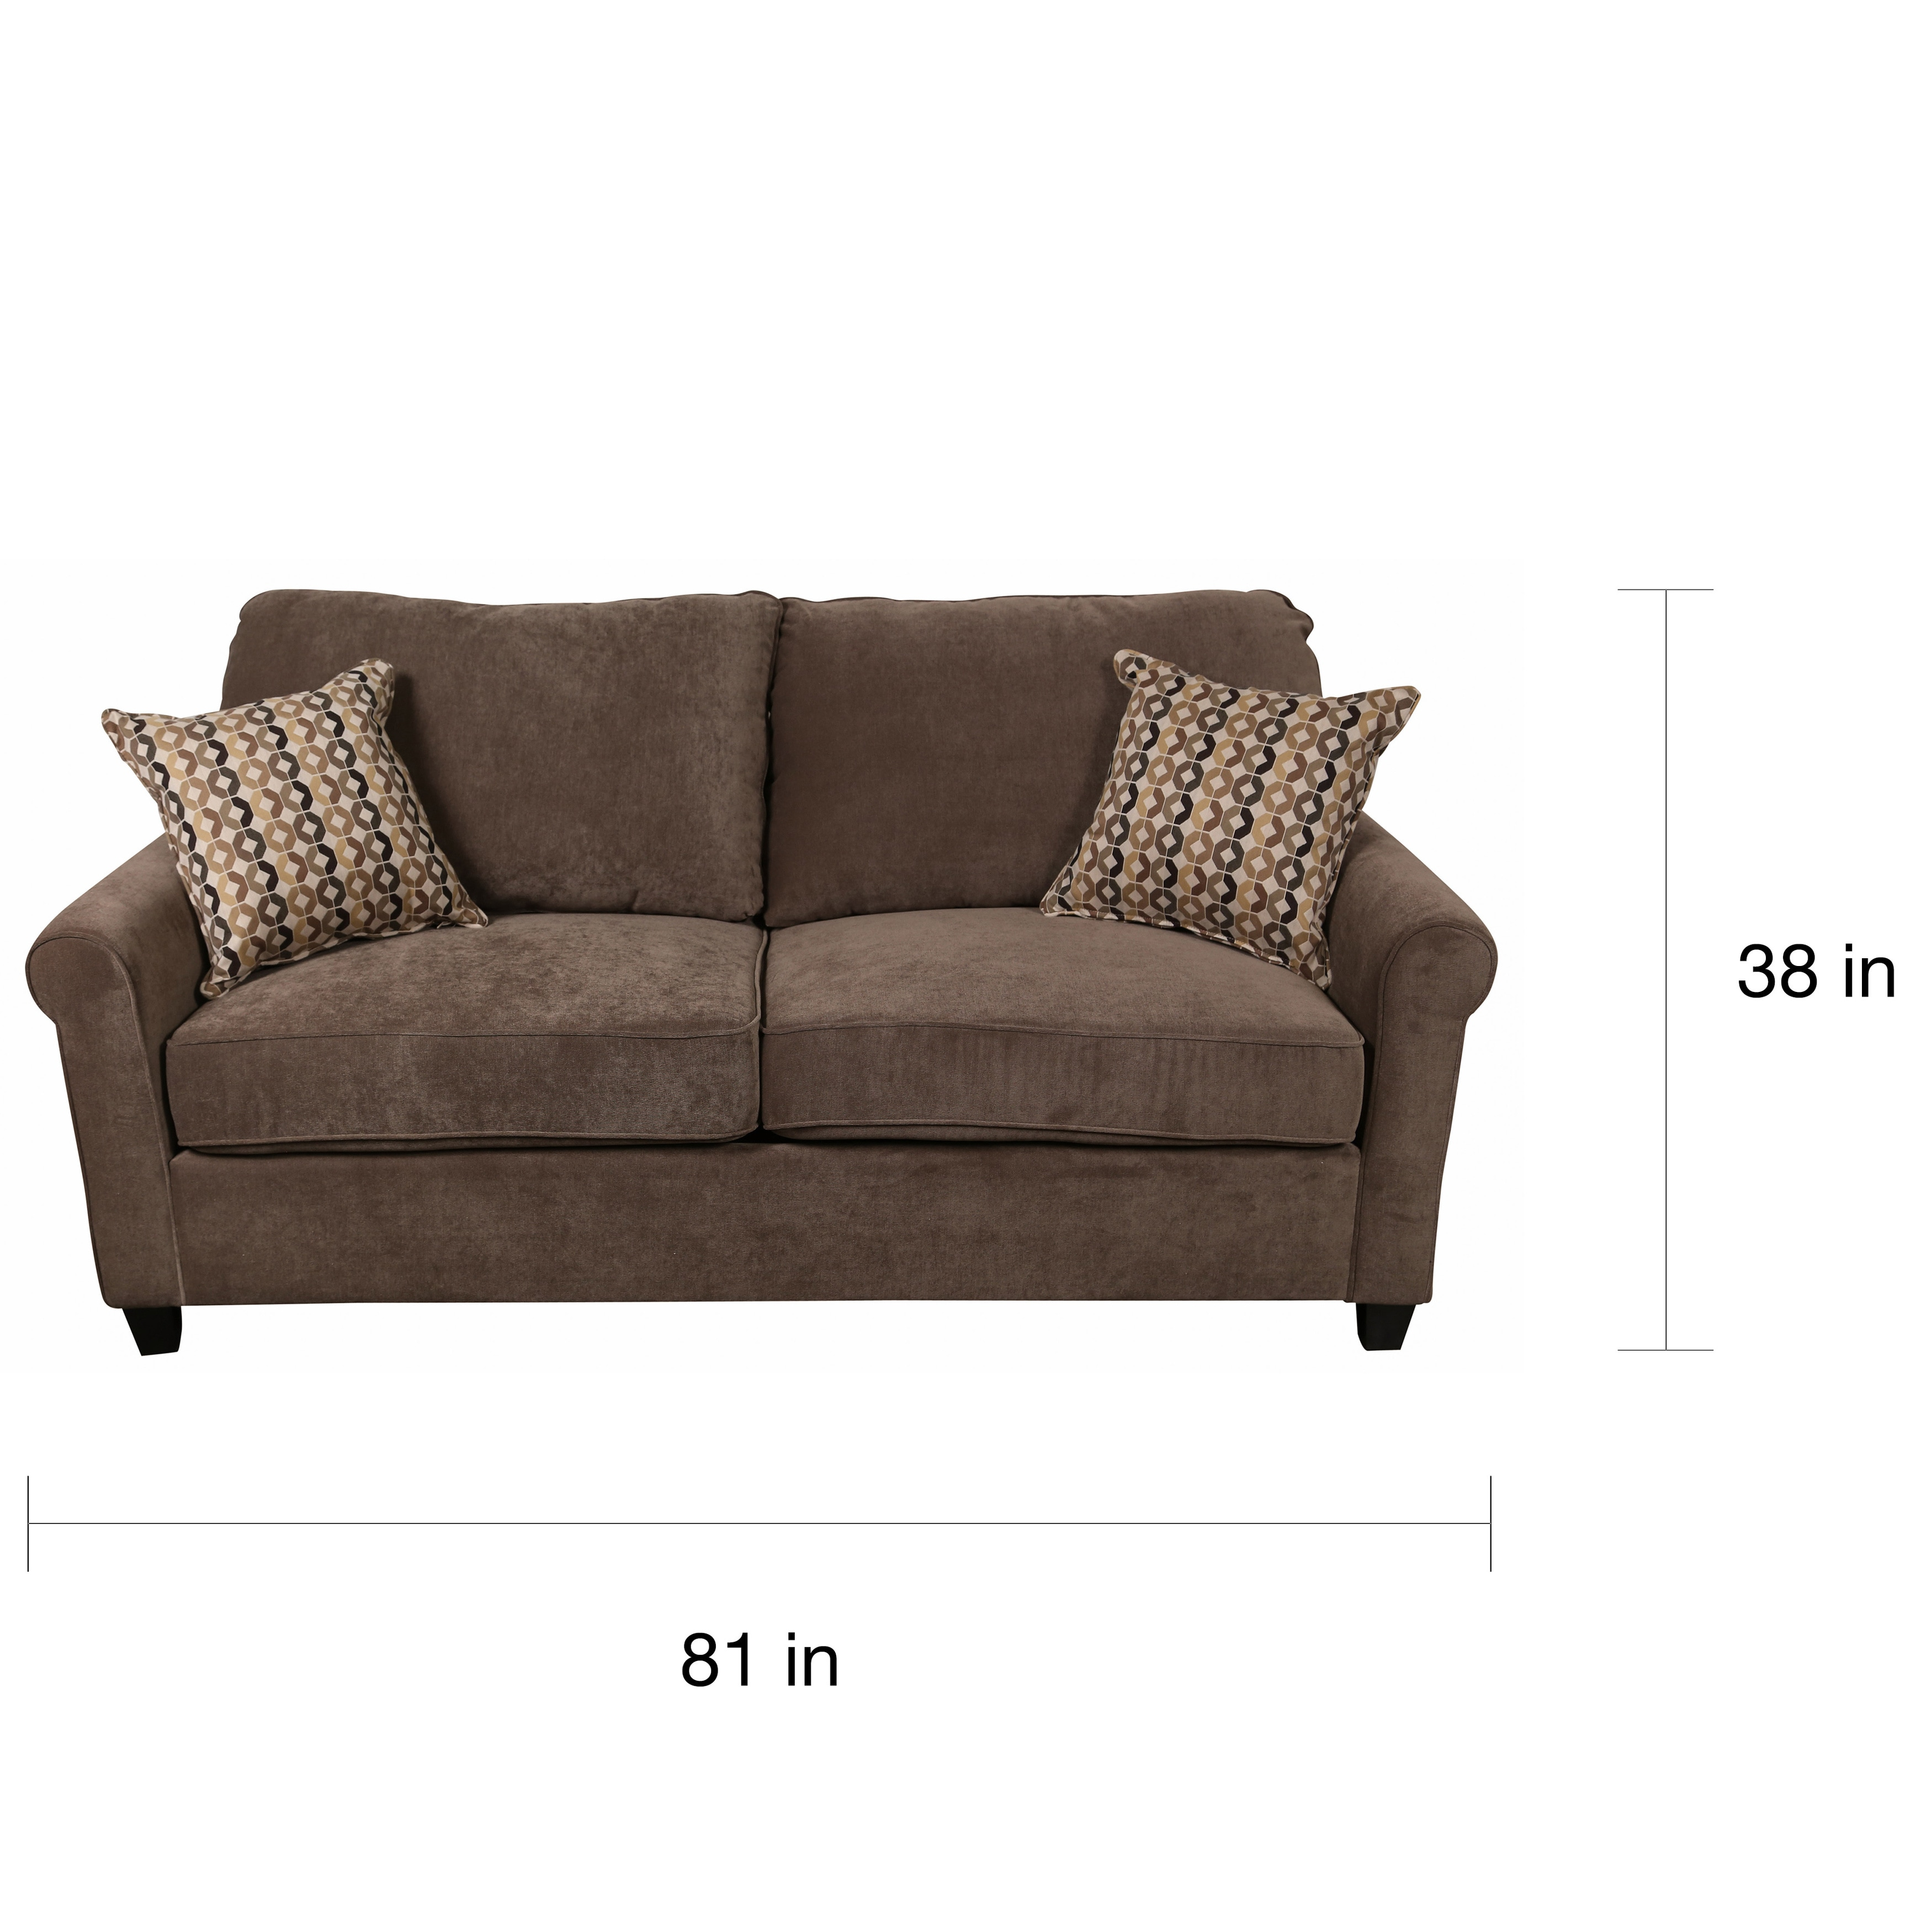 galileo cream microfiber queen sleeper sofa best pet covers for leather www looksisquare com porter serena warm grey with two woven